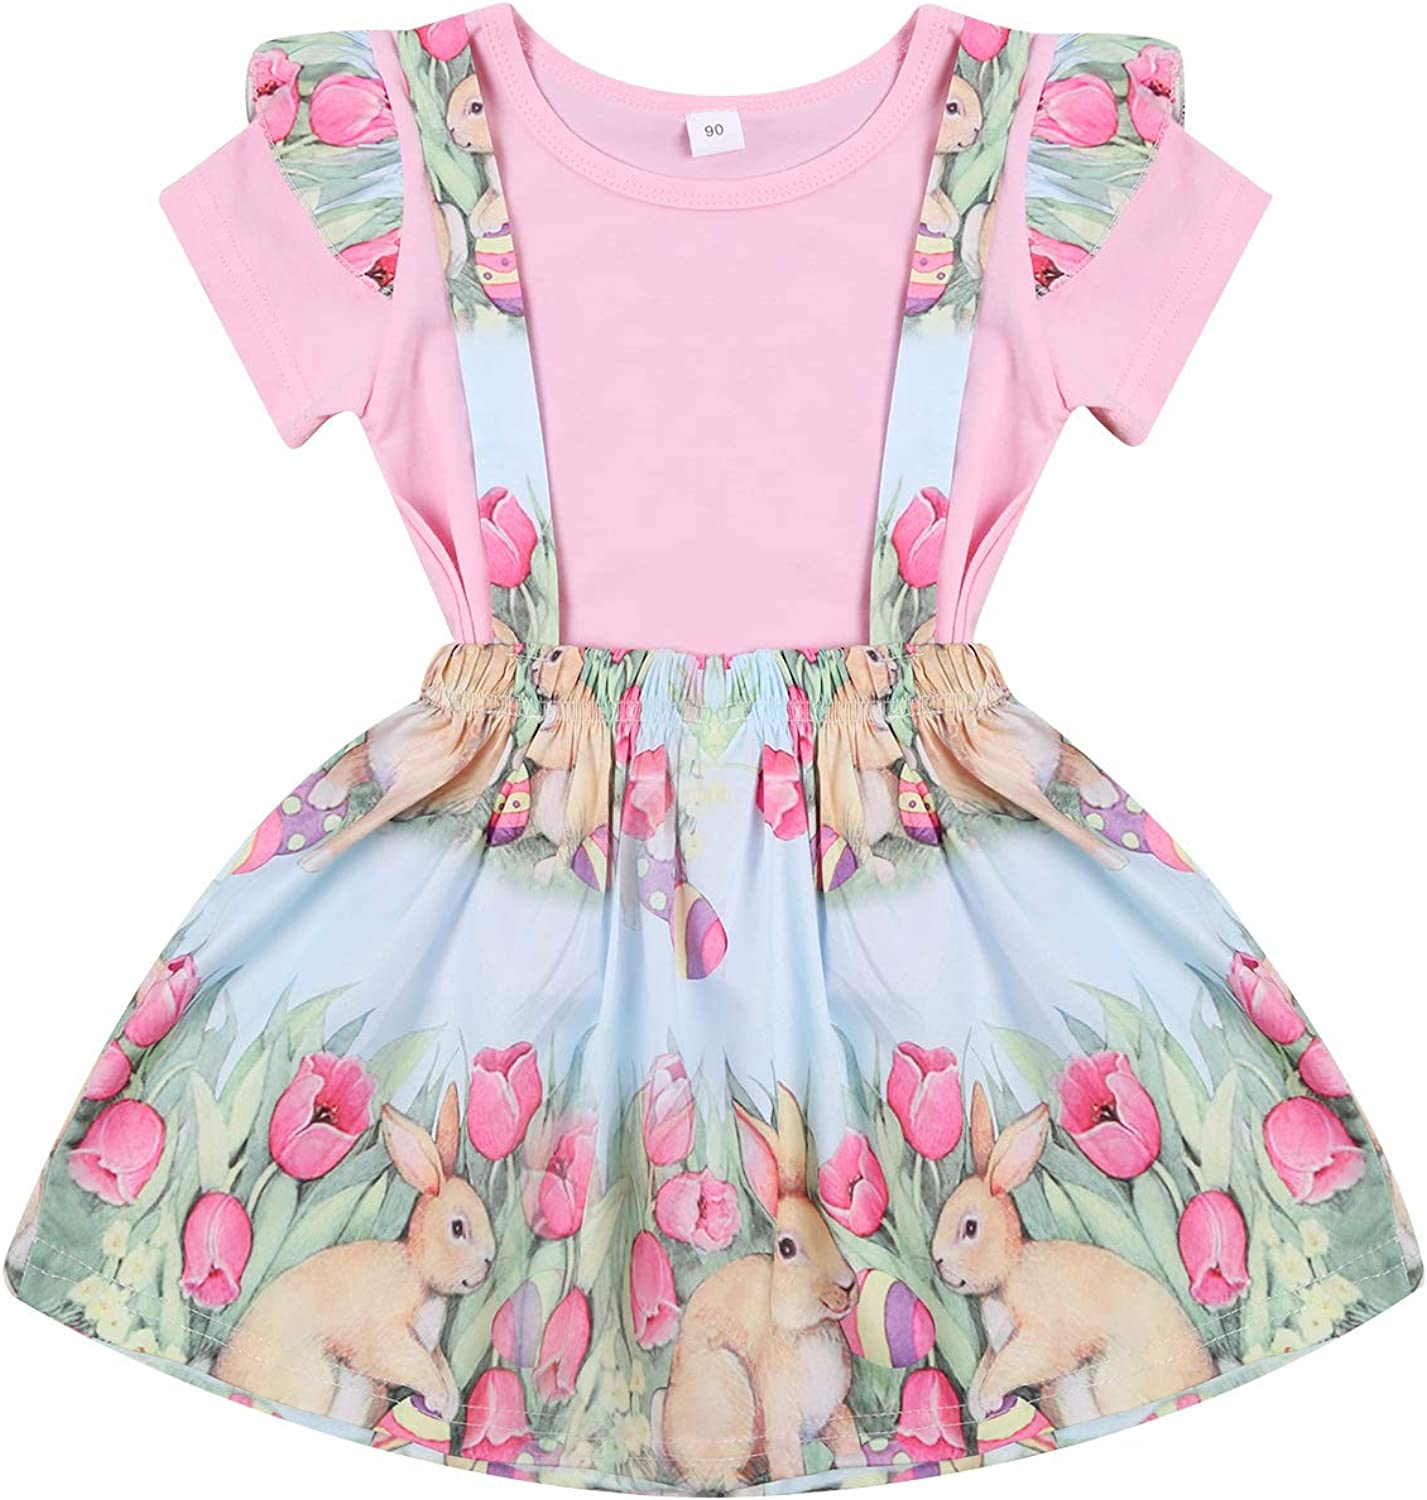 Toddler Baby Girl Easter Bunny Clothes Short Sleeve Tops Solid T-Shirt Easter Bunny Suspender Skirt 2 Piece Outfit Set